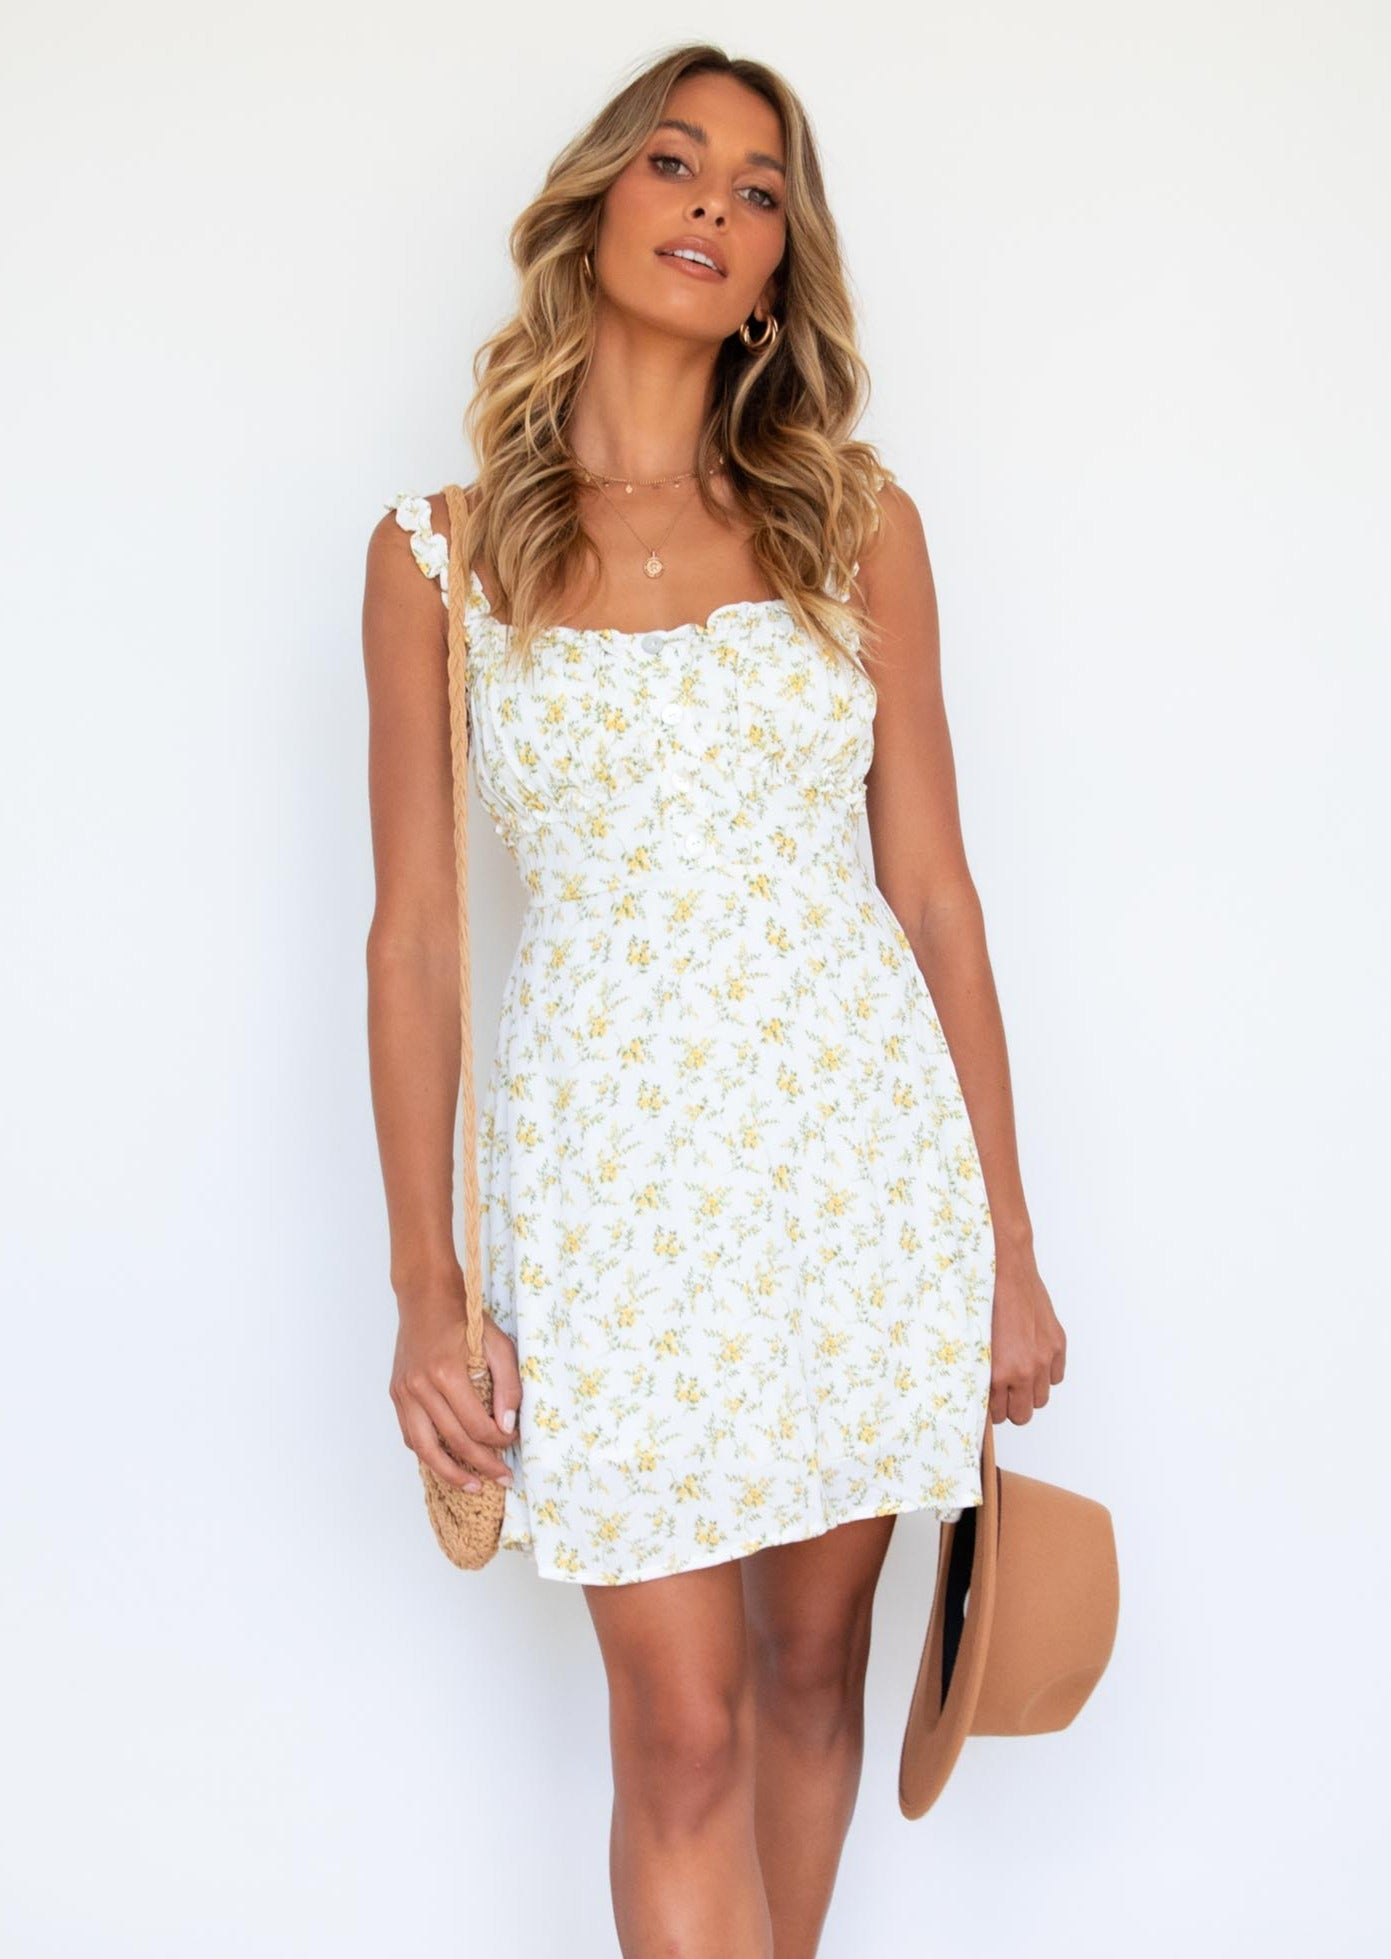 Knoxlee Dress - Yellow WIld Flower